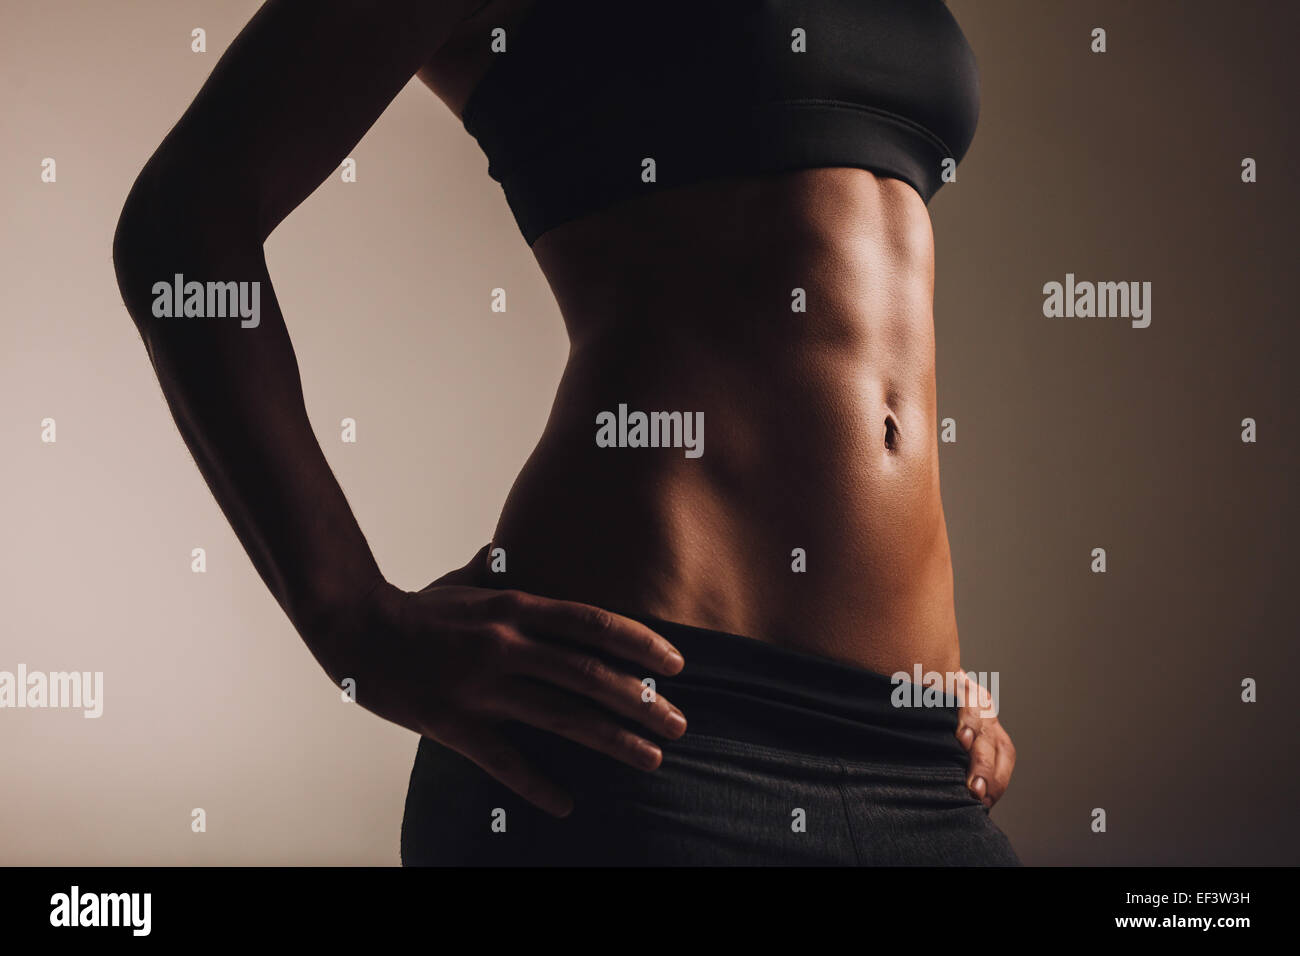 Mid section of strong young woman torso with her hands on hips. Abs of female  athlete in sportswear. - Stock Image